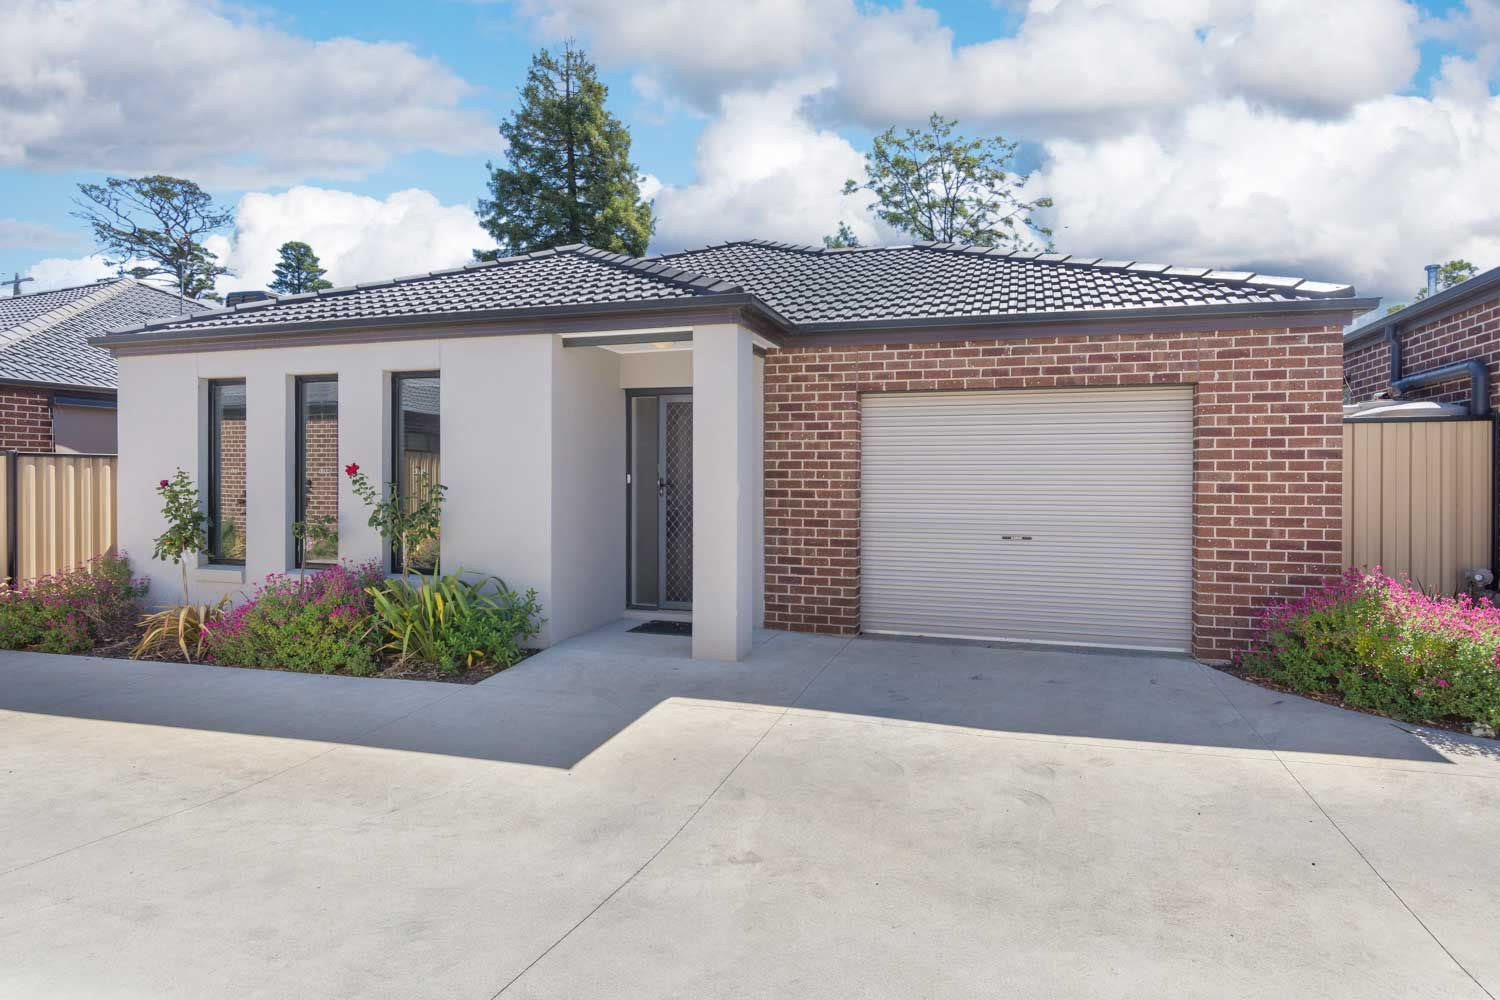 1/1446a Gregory Street, Lake Wendouree VIC 3350, Image 0